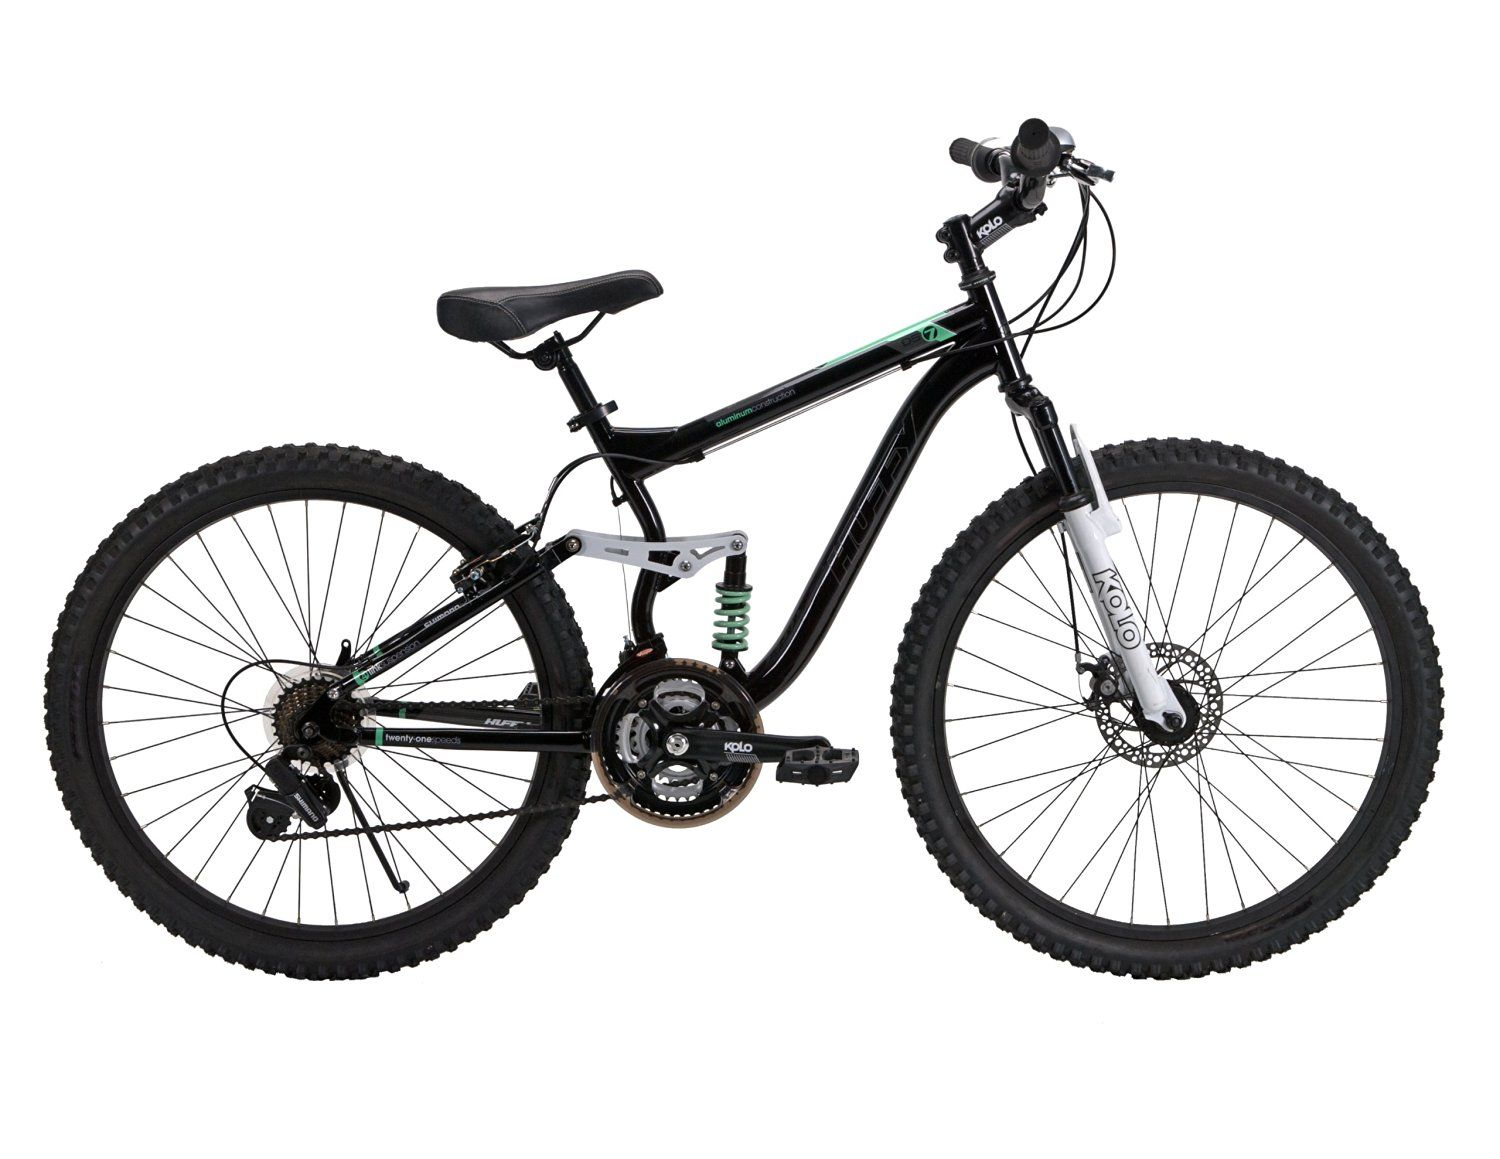 Huffy 26 Inch Ladies Ds 7 Dual Suspension Bike Black You Can Get More Details By Clicking On The Image Dual Suspension Mountain Bike Suspension Bike Huffy